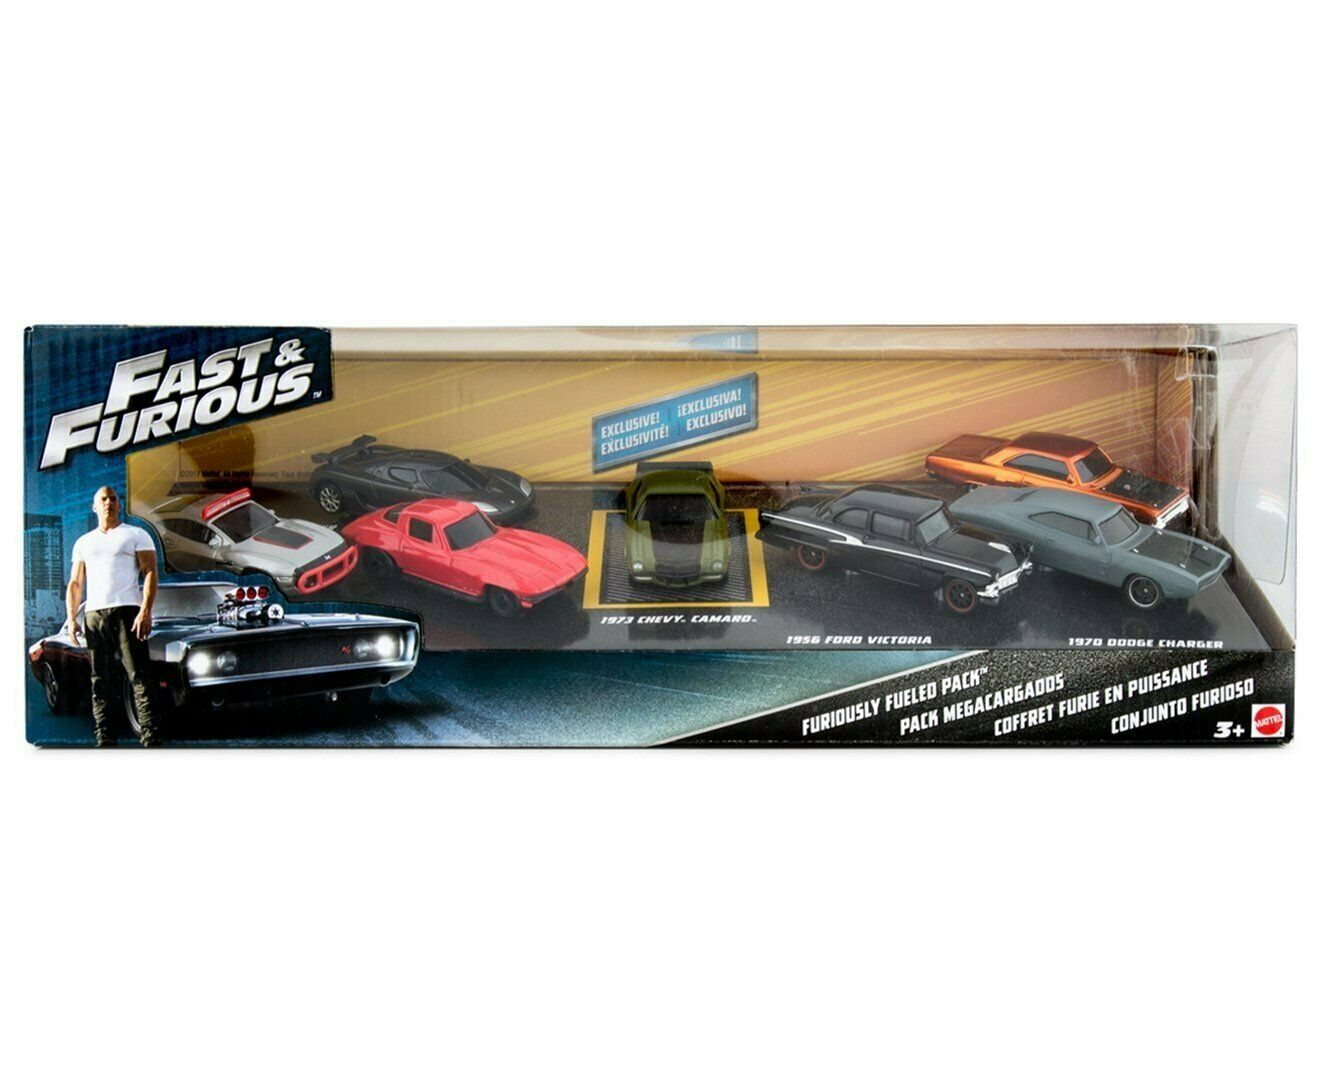 Fast & Furious Set of 7 vehicles in blister Collectible  fgw70 Mattel 2017  pour pas cher